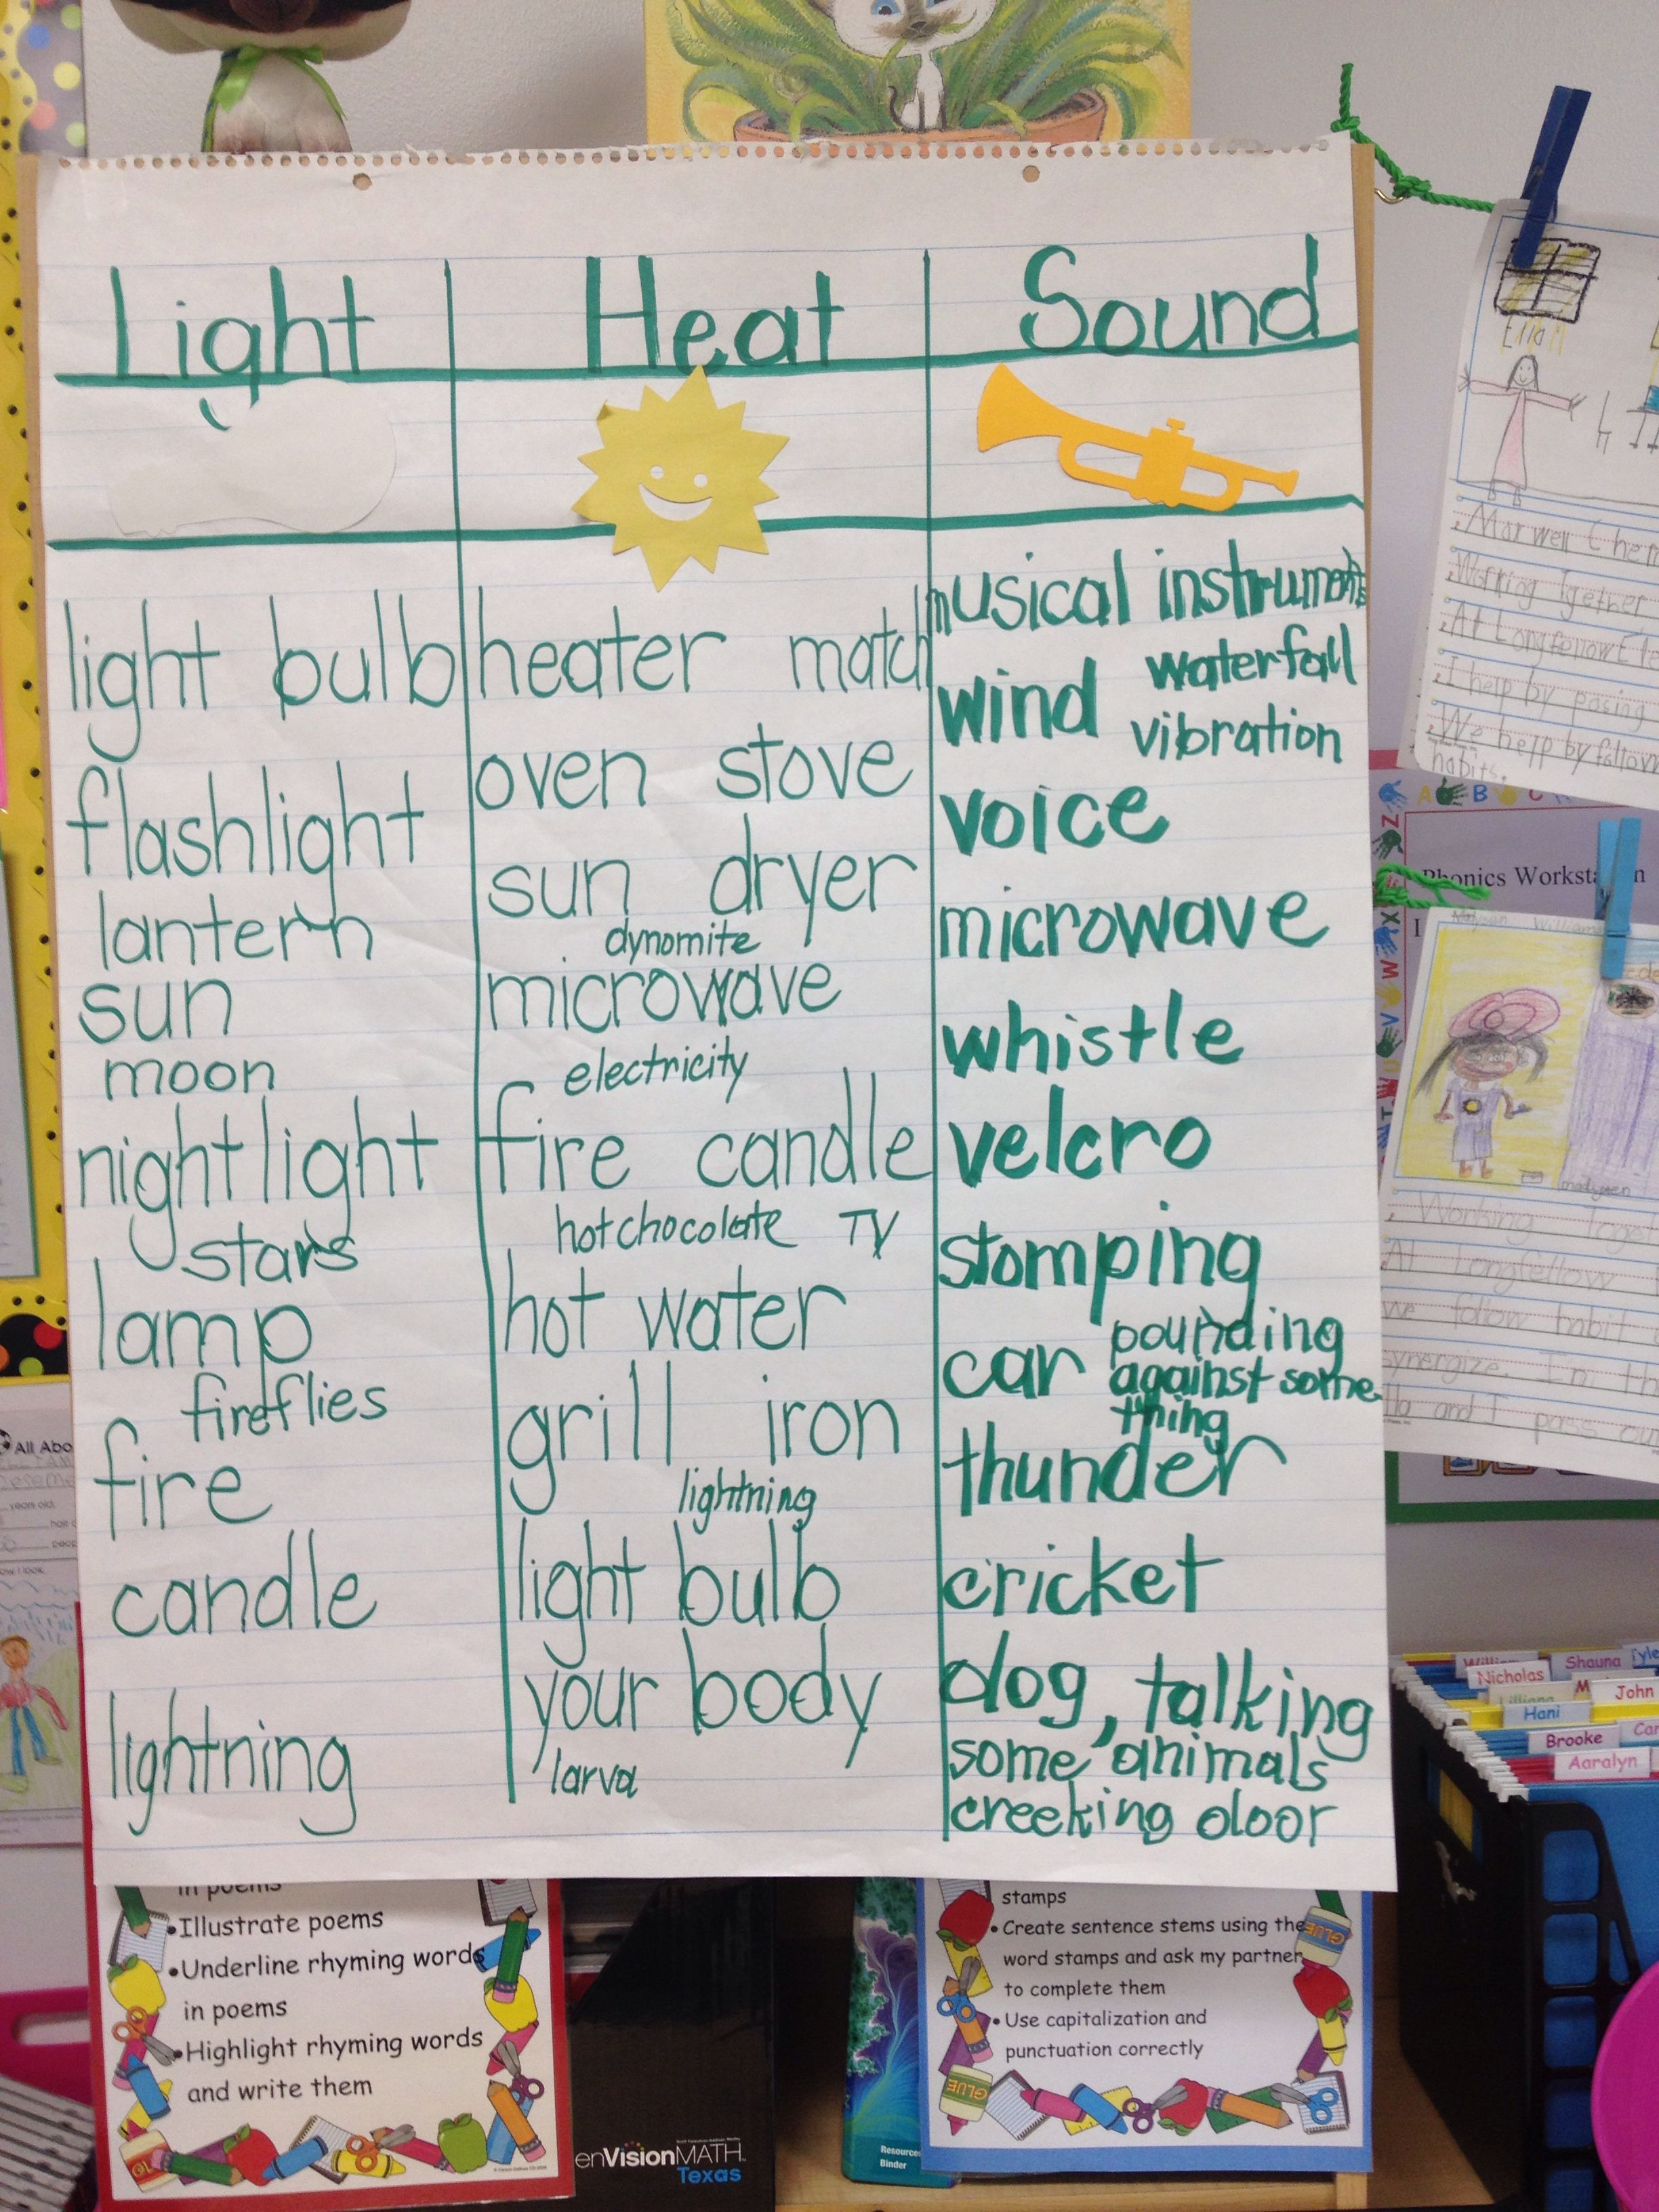 Science Heat Light Sound